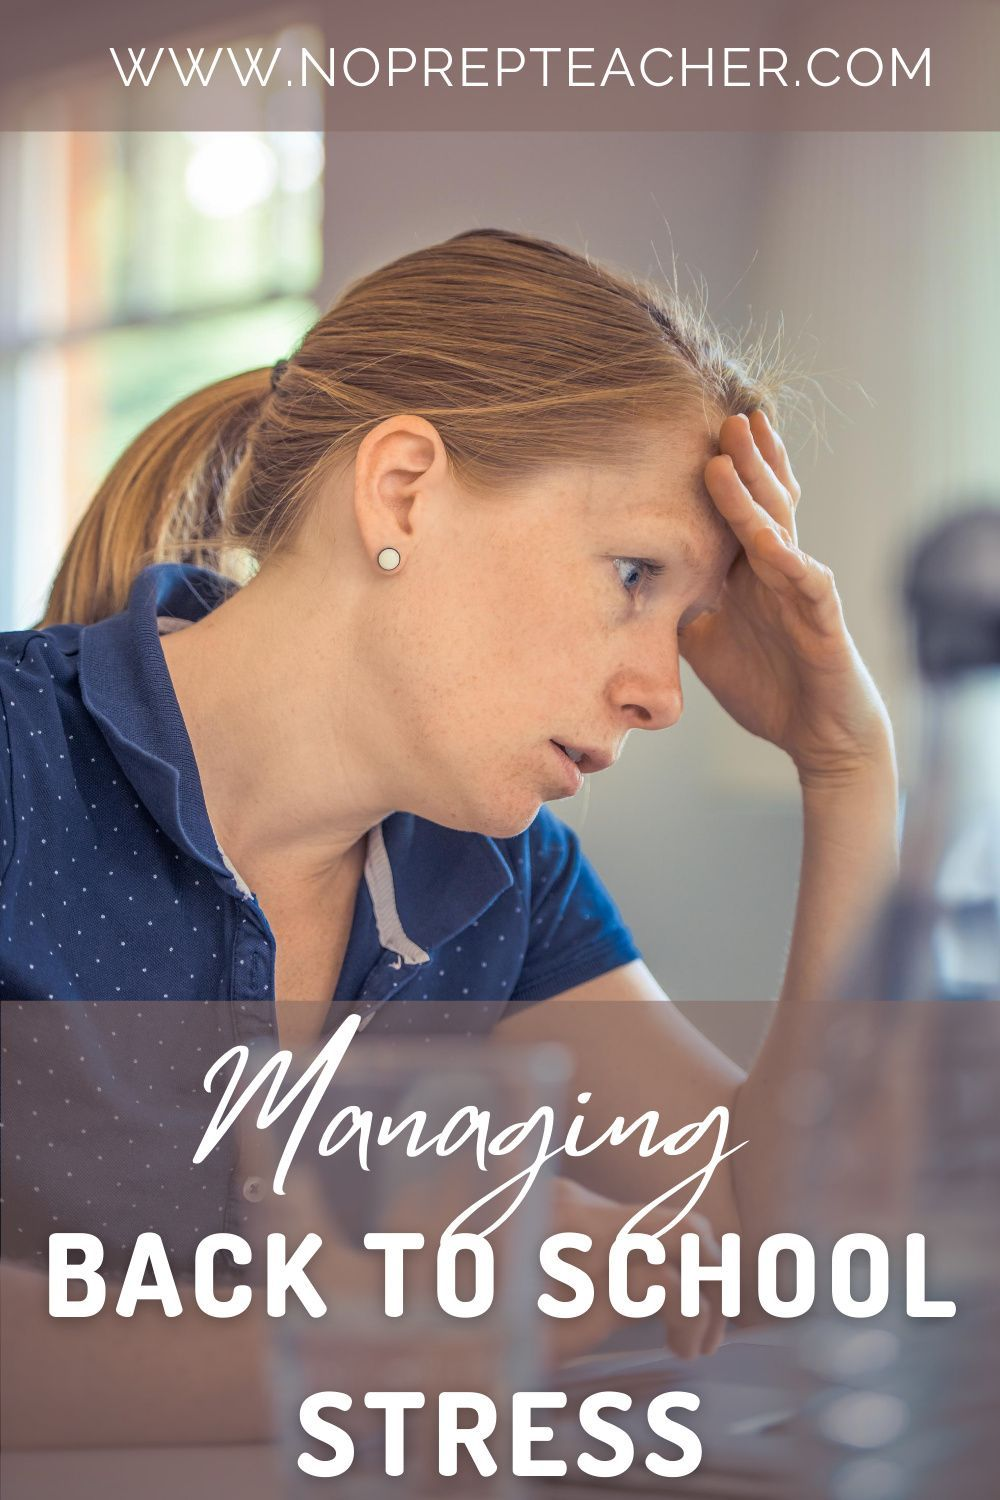 How to Manage Back to School Stress The No Prep Teacher